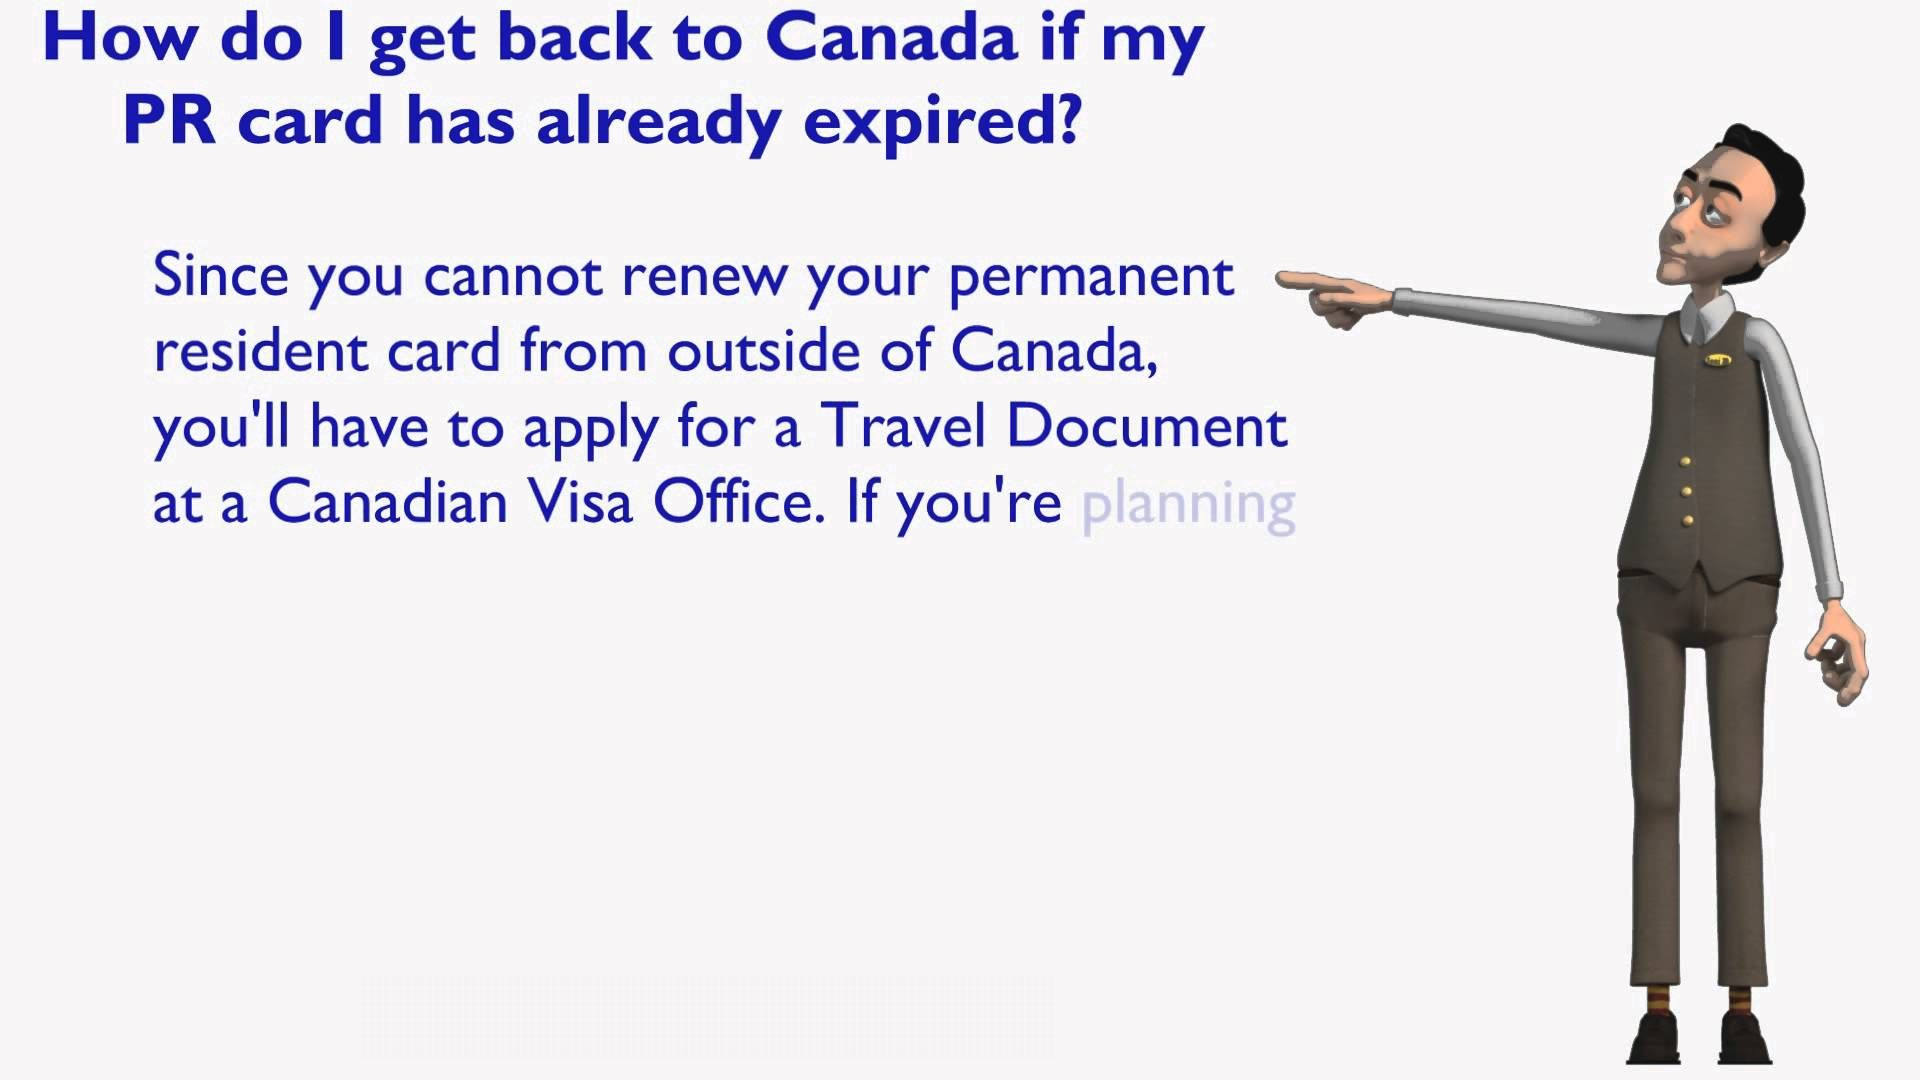 What to do if Permanent Resident Card for Canada gets expired